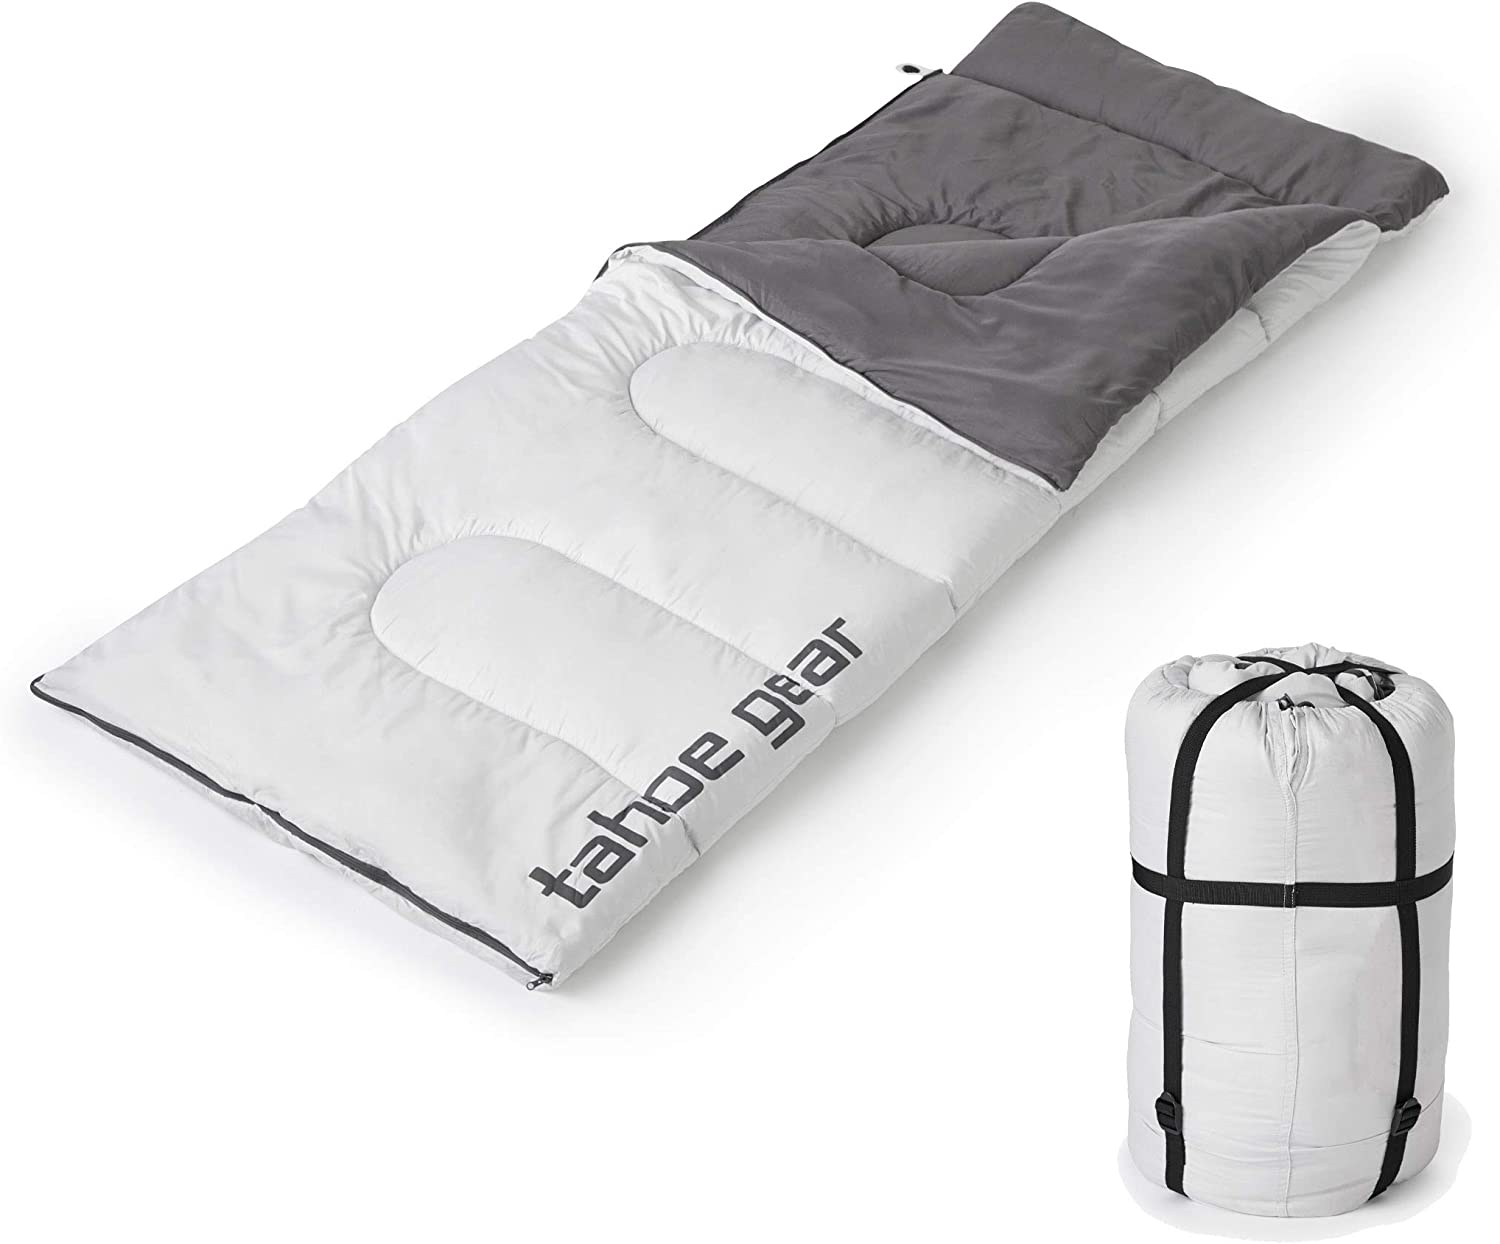 Tahoe Gear Island Peak Camping Mummy Sleeping Bag